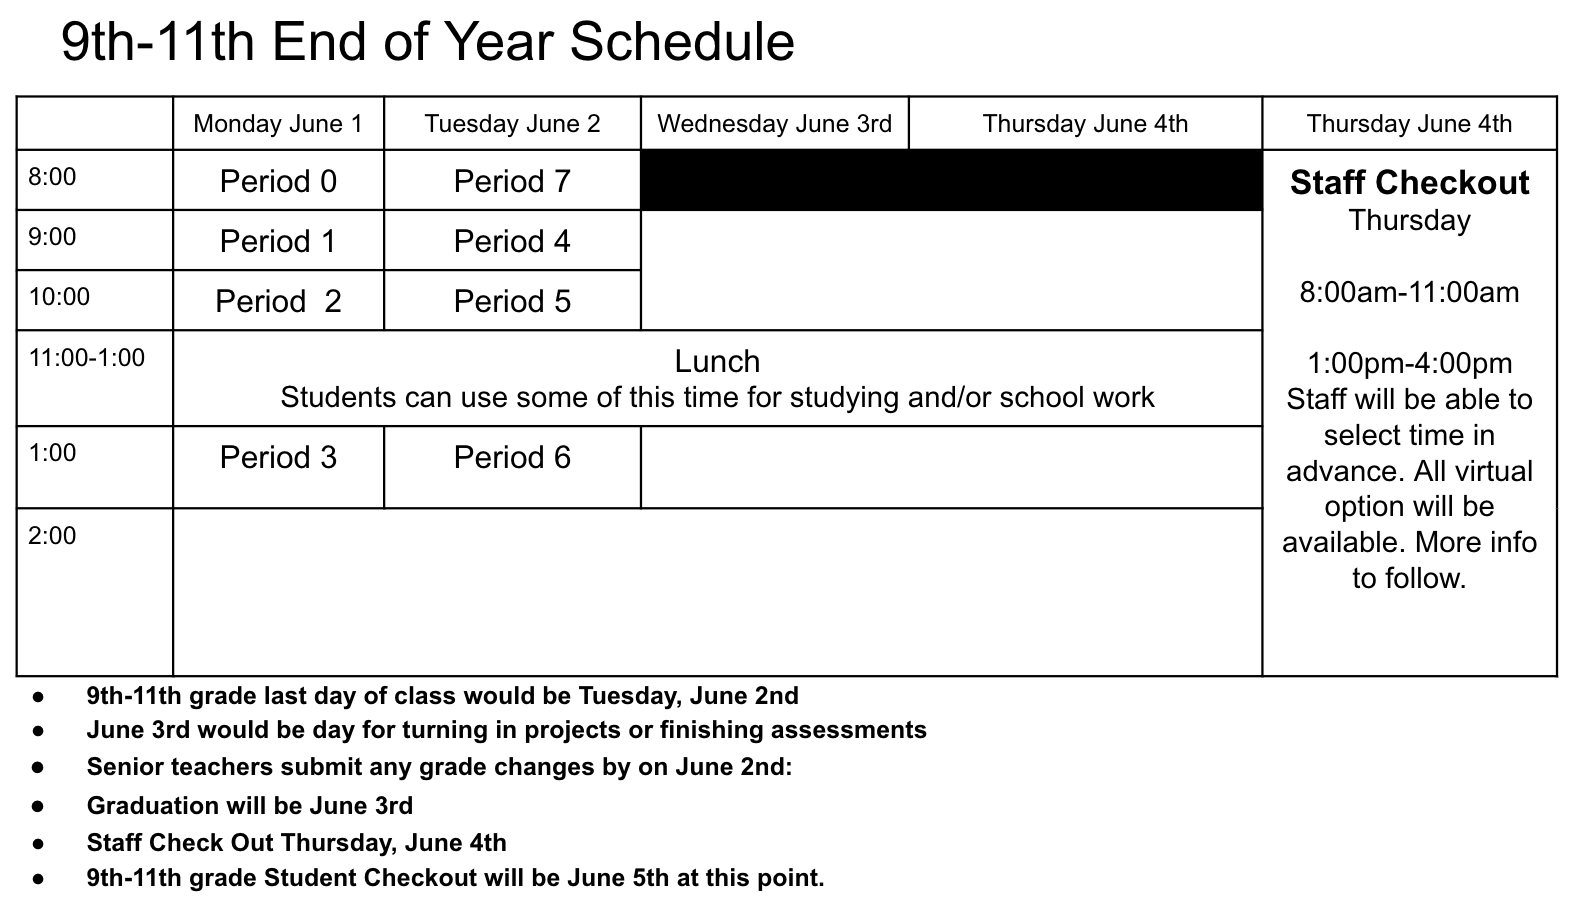 9-11 End of Year Schedule